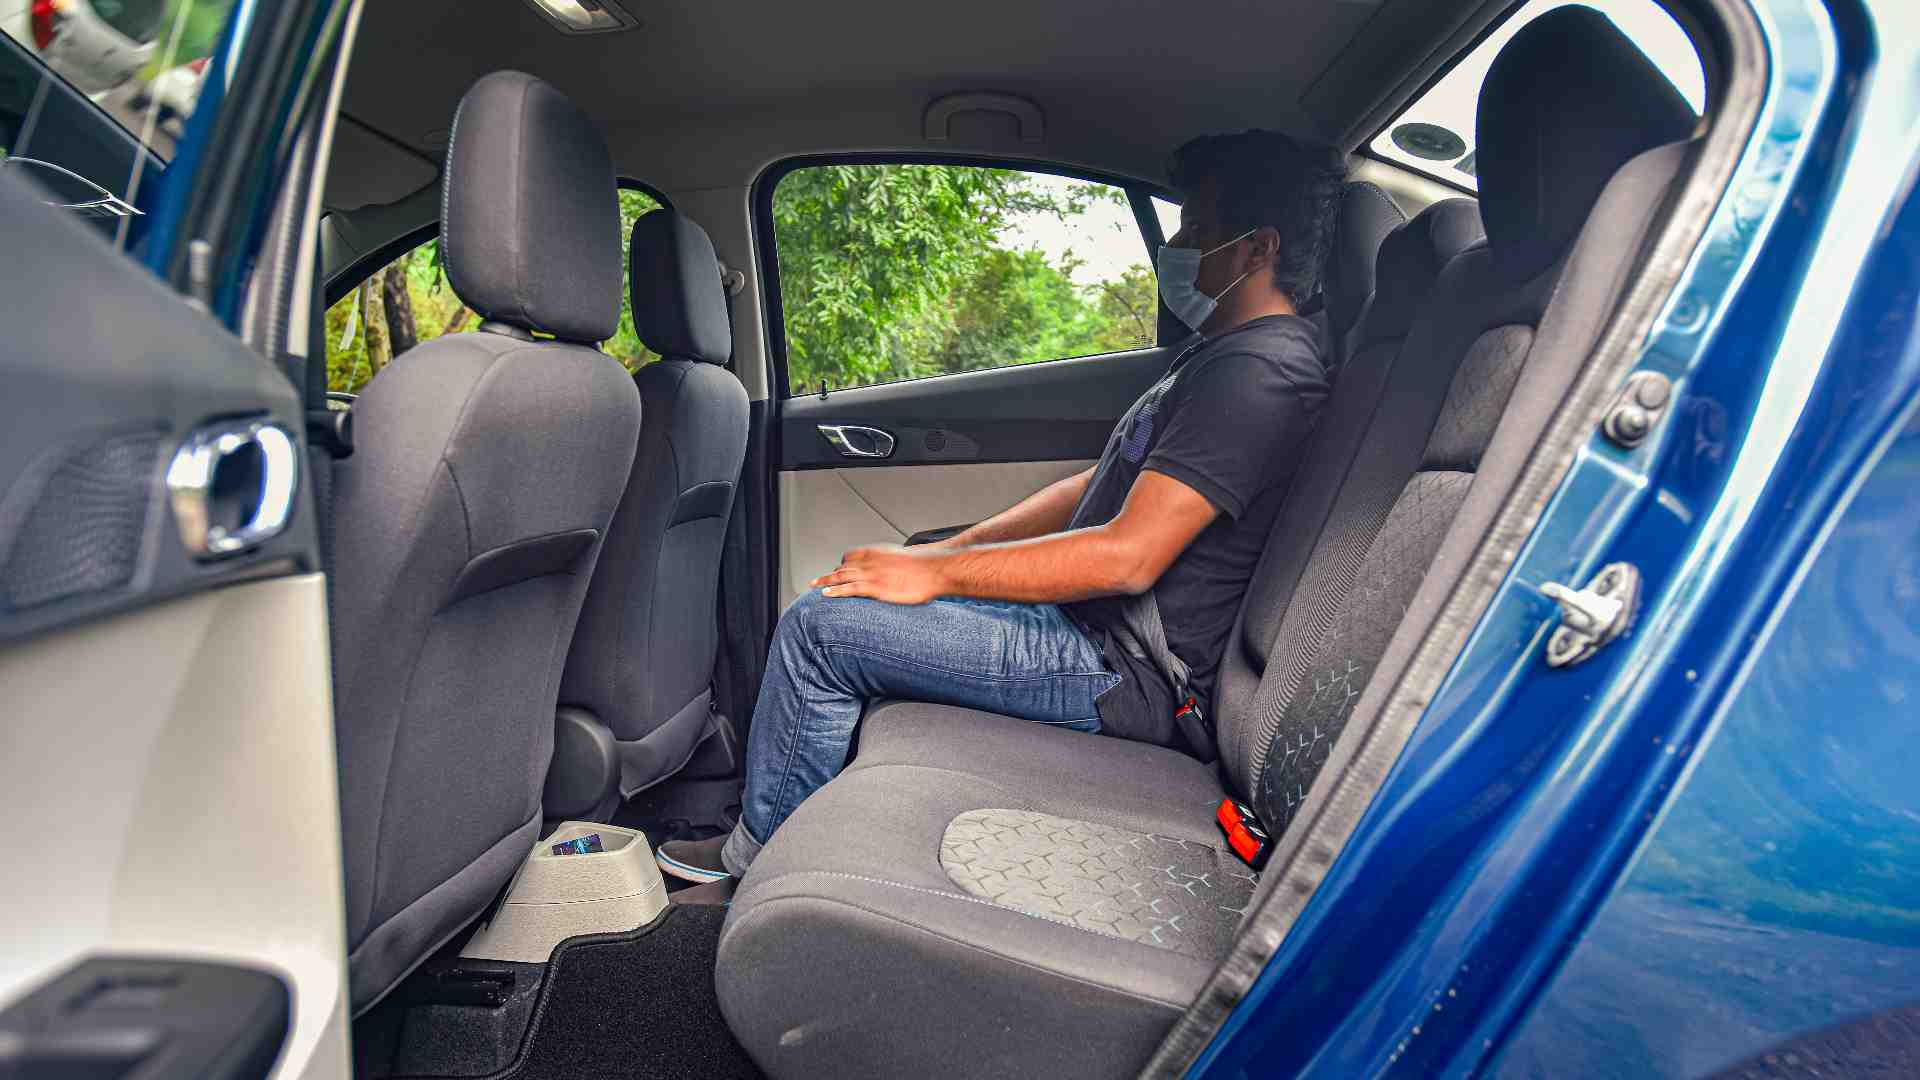 The rear seat in the Tigor EV has enough space for even taller passengers. Image: Anis Shaikh/Overdrive